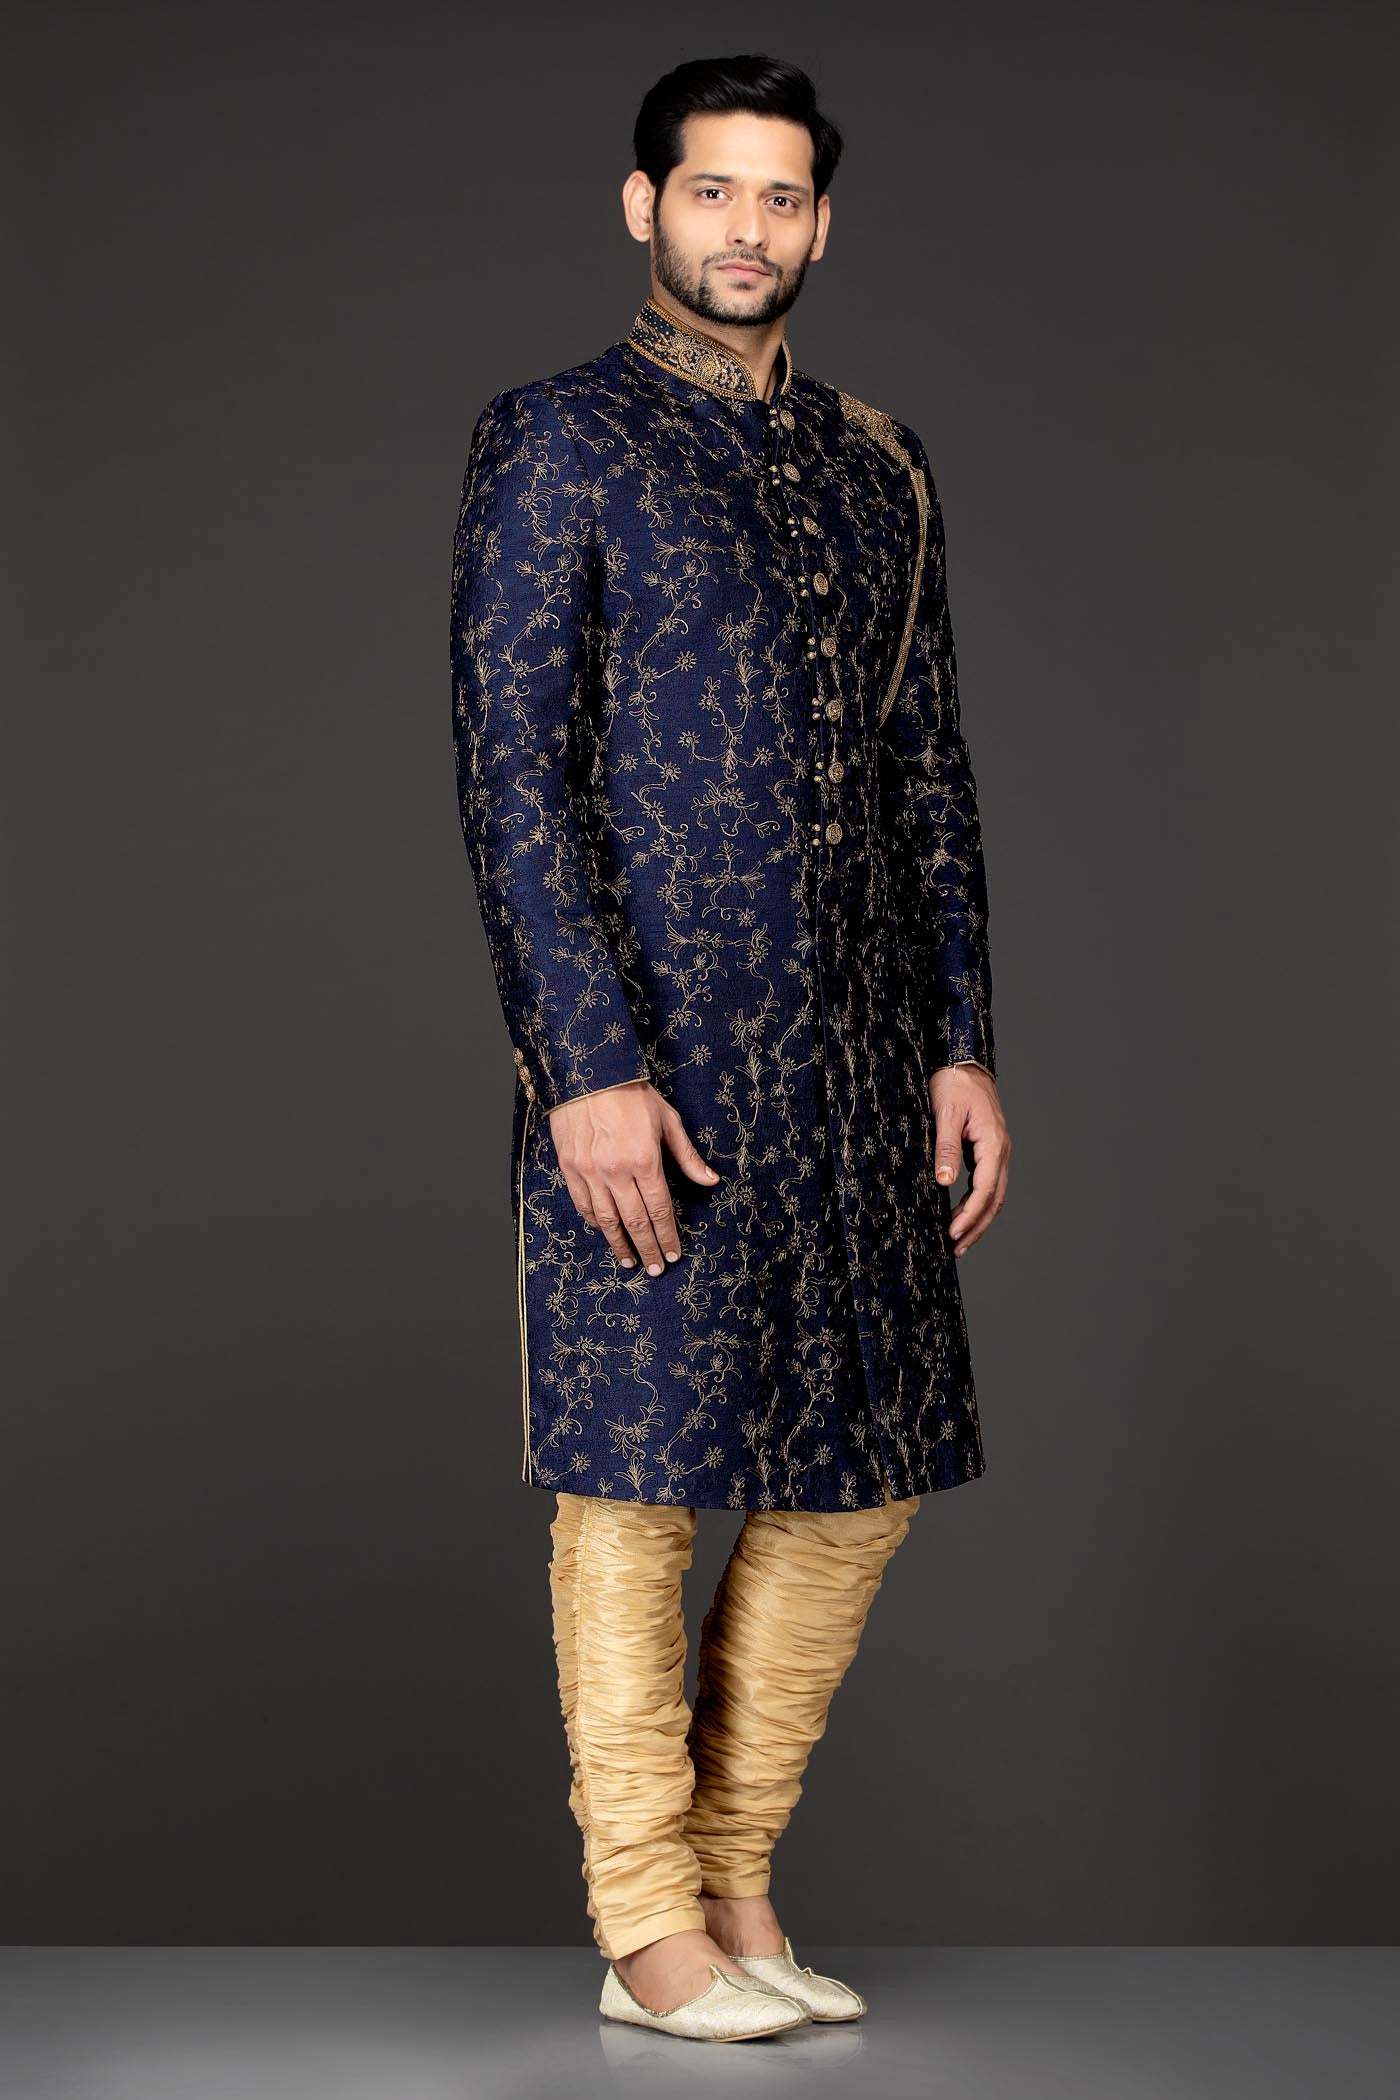 Navy Blue Silk Sherwani With Embroidery On The Collar And Shoulder Brooch With Hanging Tassels Paired With Gold Trousers